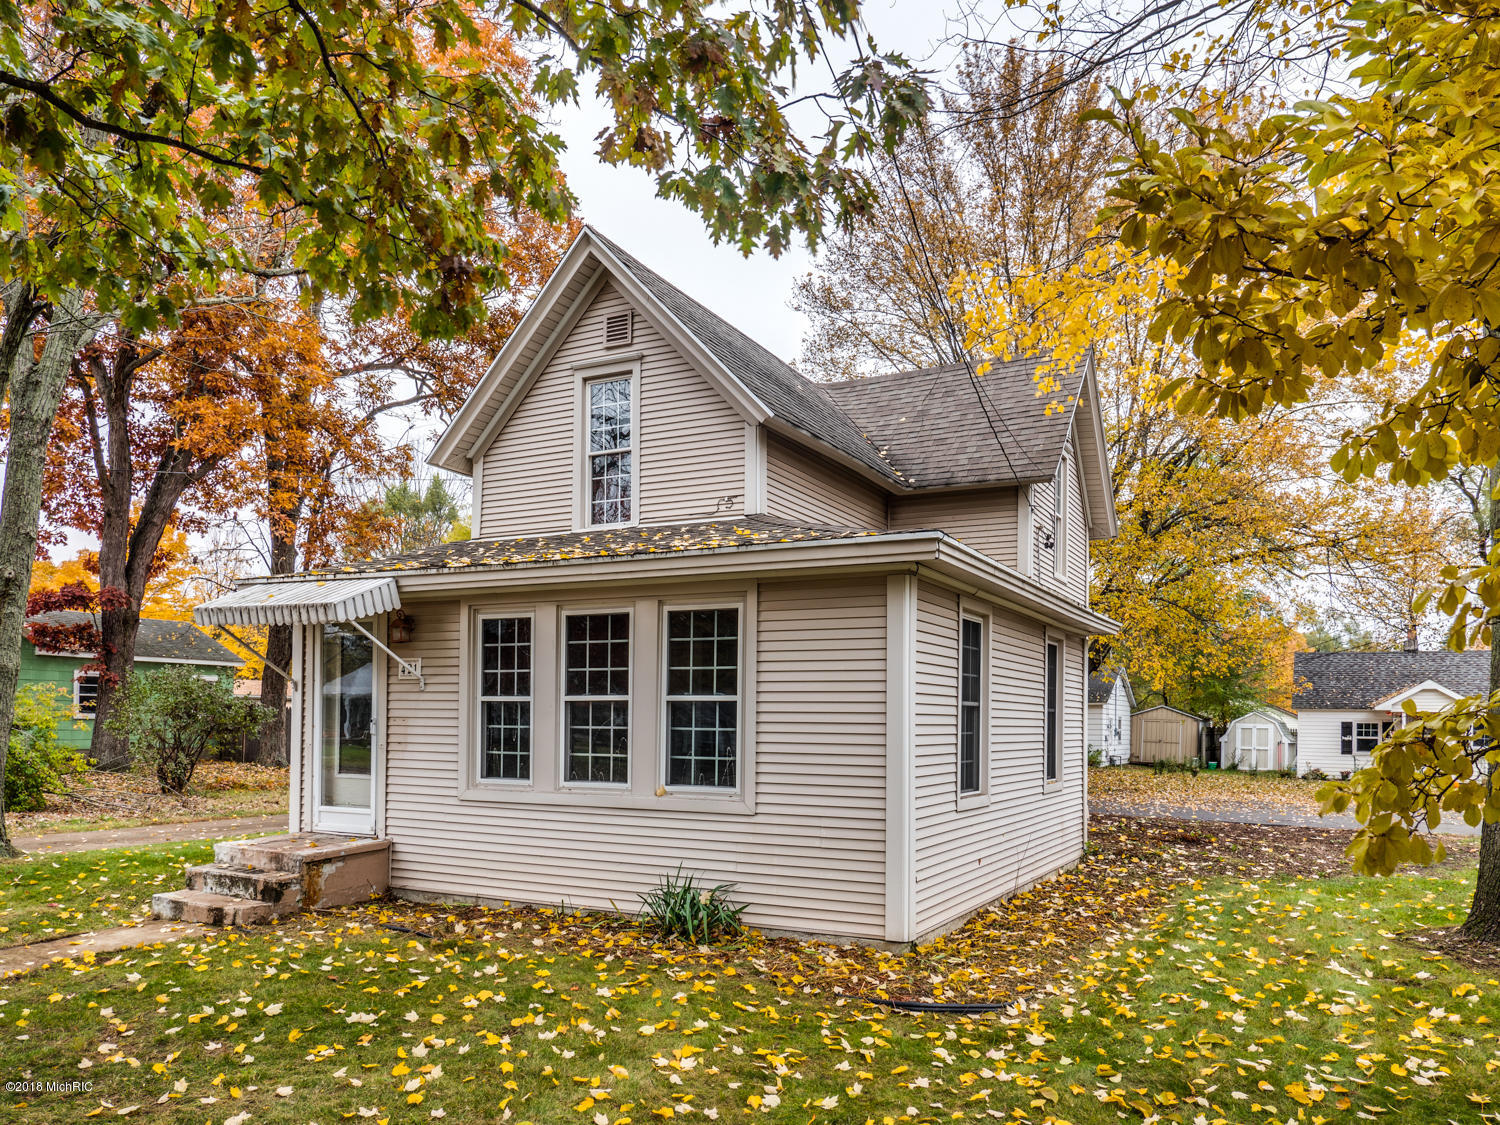 Photo for 421 E Hammond, Otsego, MI 49078 (MLS # 18043970)